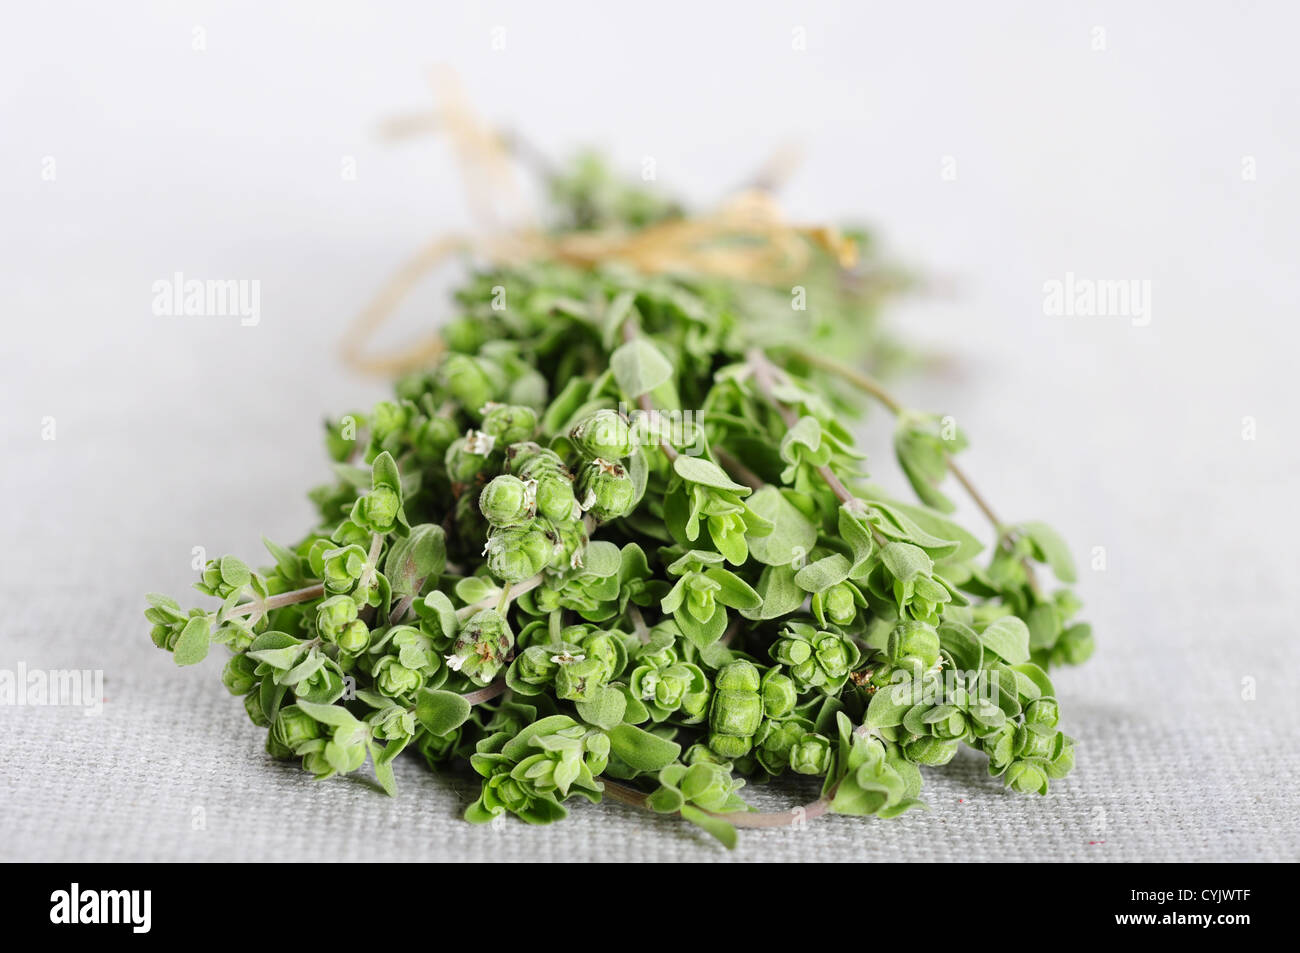 Bunch of blooming marjoram herb closeup on beige tablecloth - Stock Image